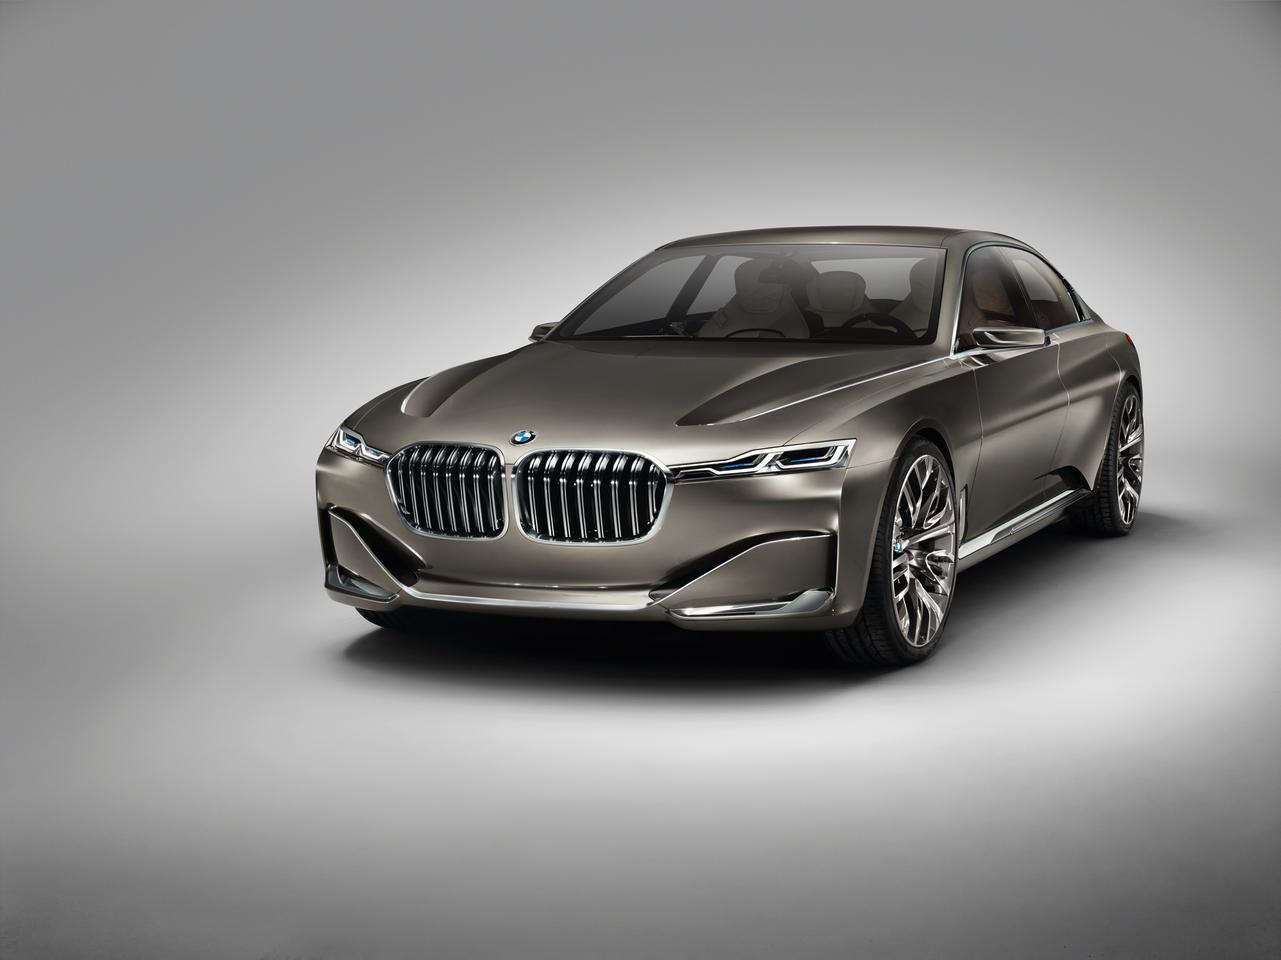 The front-end is defined by a large kidney grille, laser headlamps and aerodynamic treatments